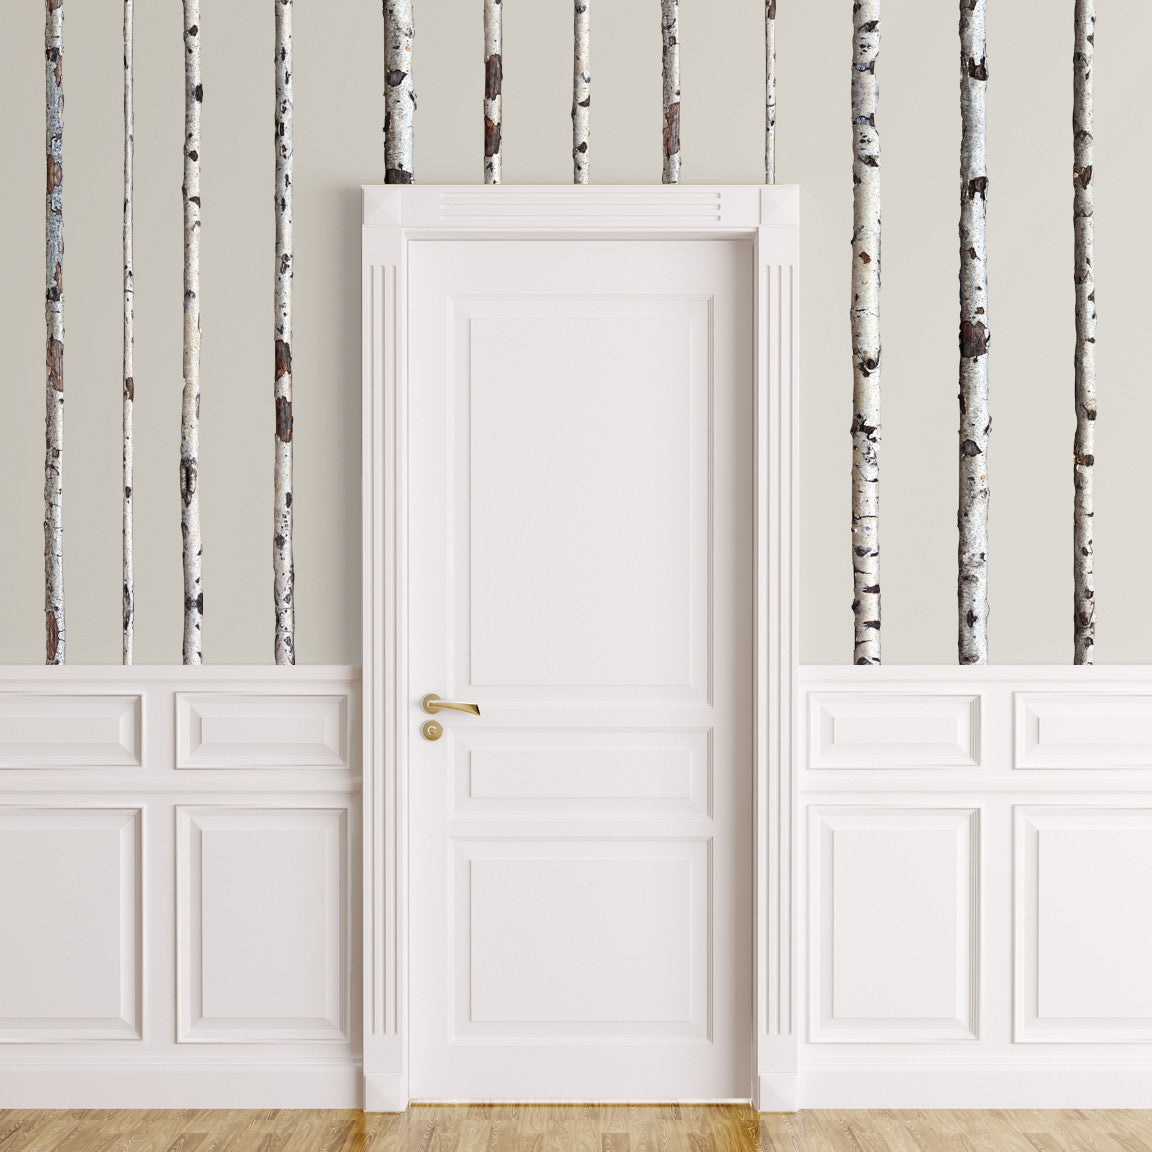 wall decals - Summer Birch Trees on wall behind door!